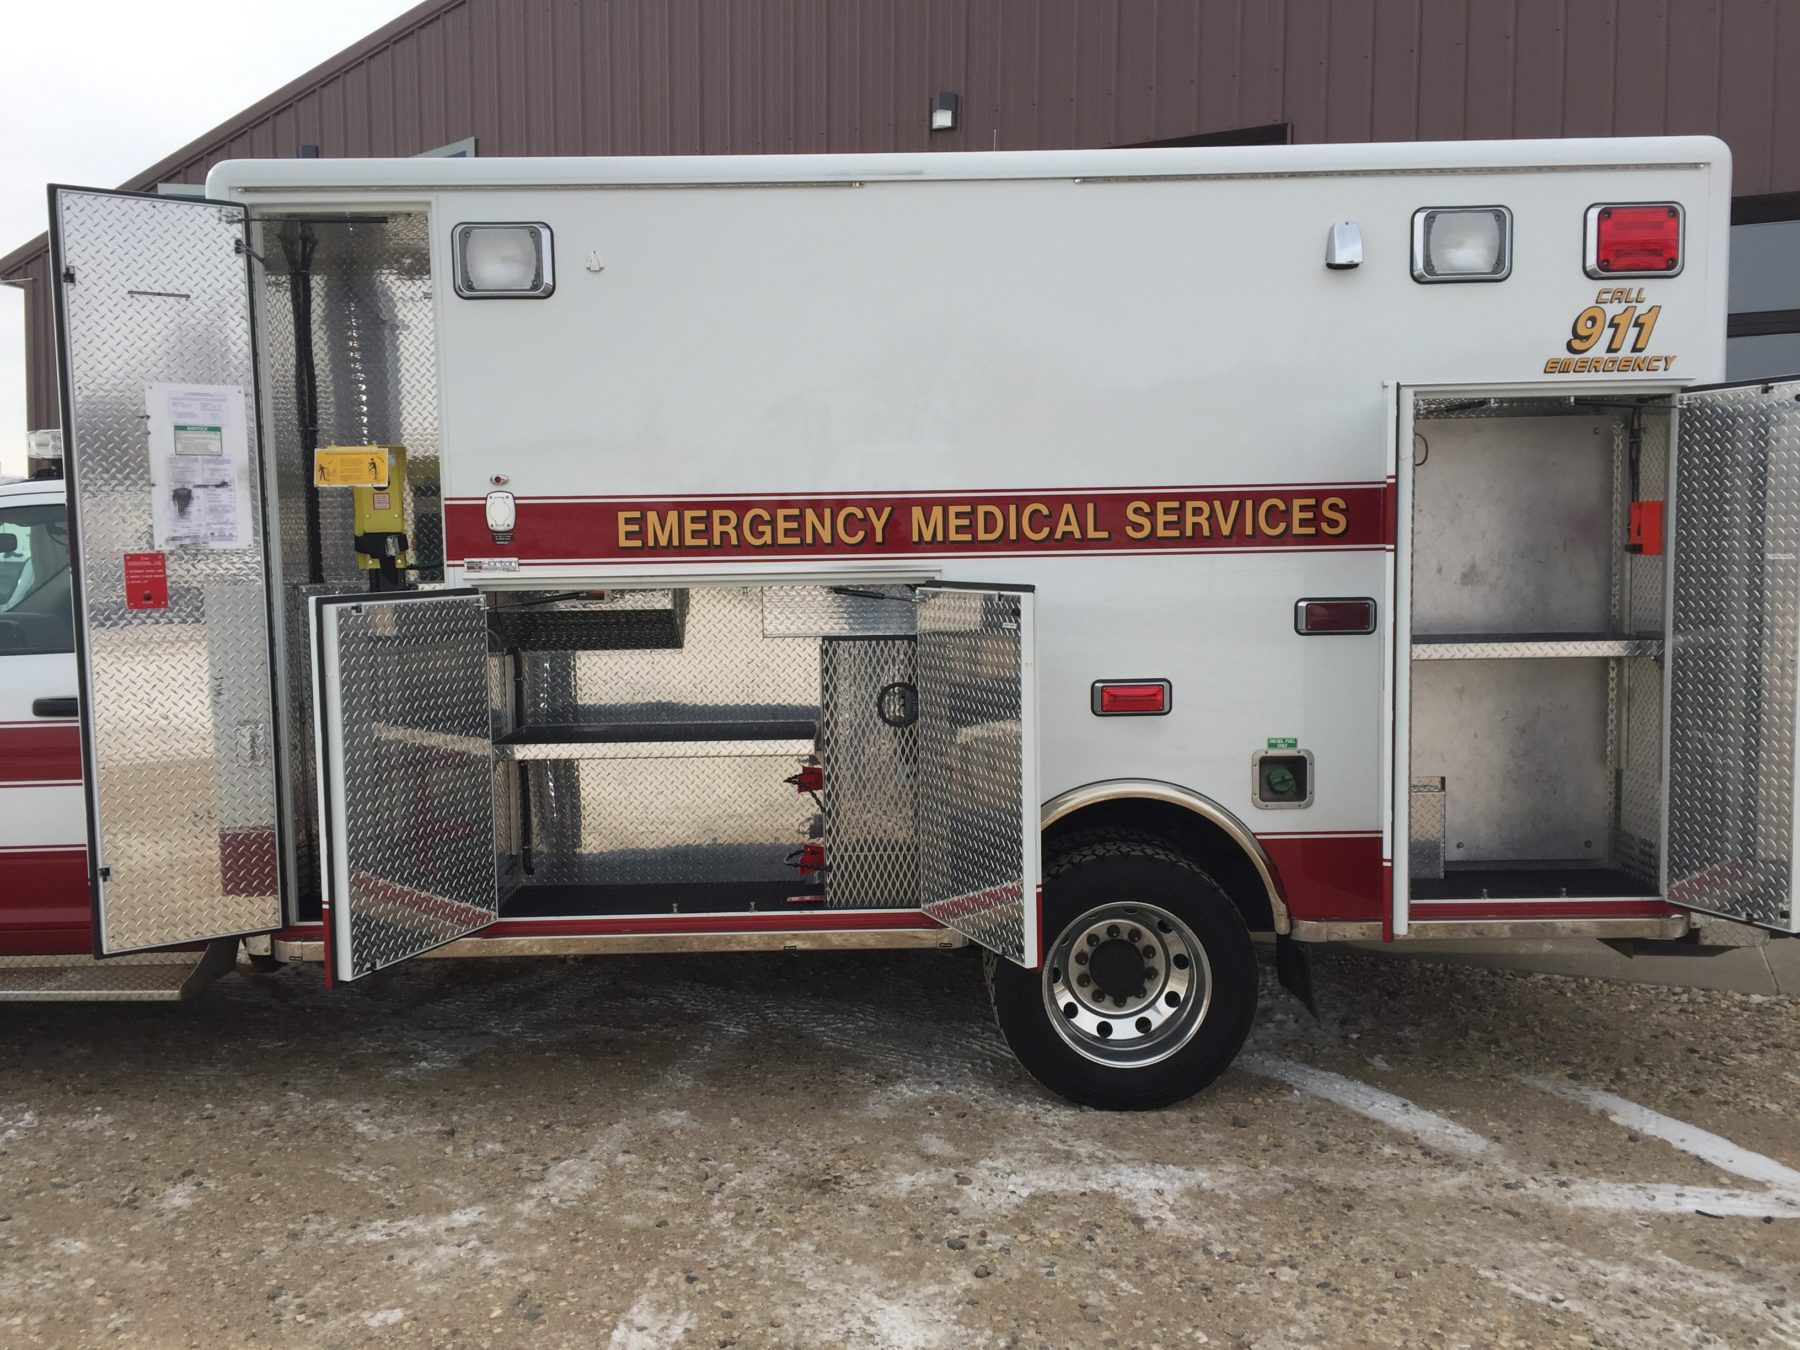 2012 Dodge 4500 Heavy Duty Ambulance For Sale – Picture 6